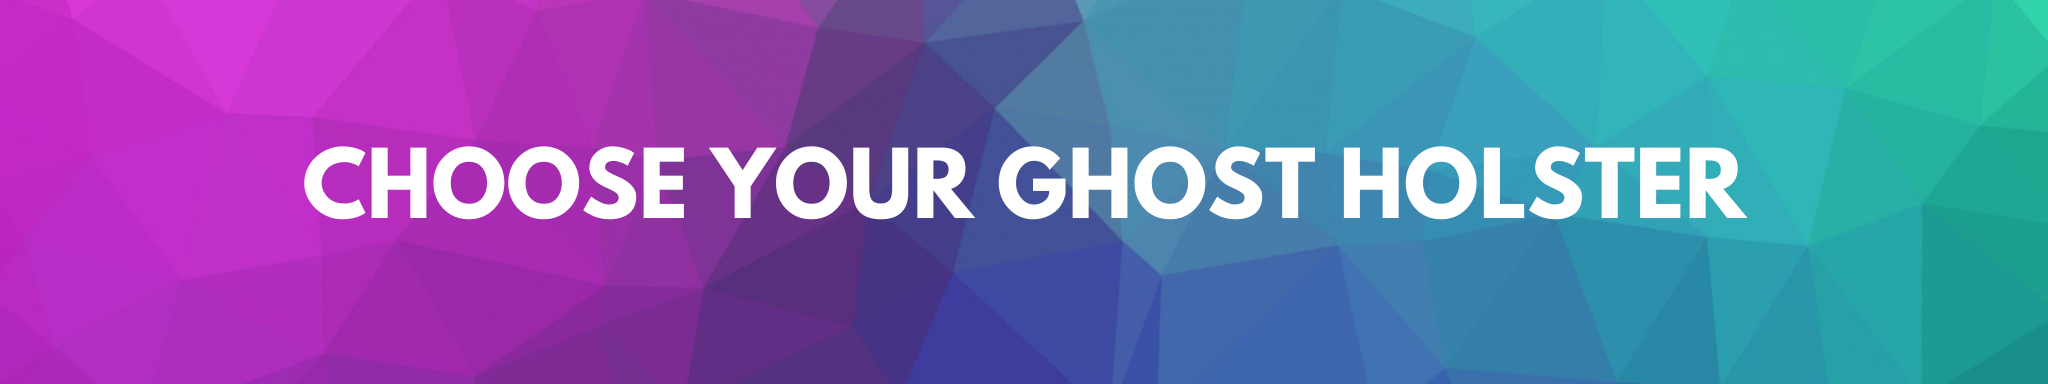 Customize your Ghost rig. Begin by choosing which Ghost Holster best suits you.